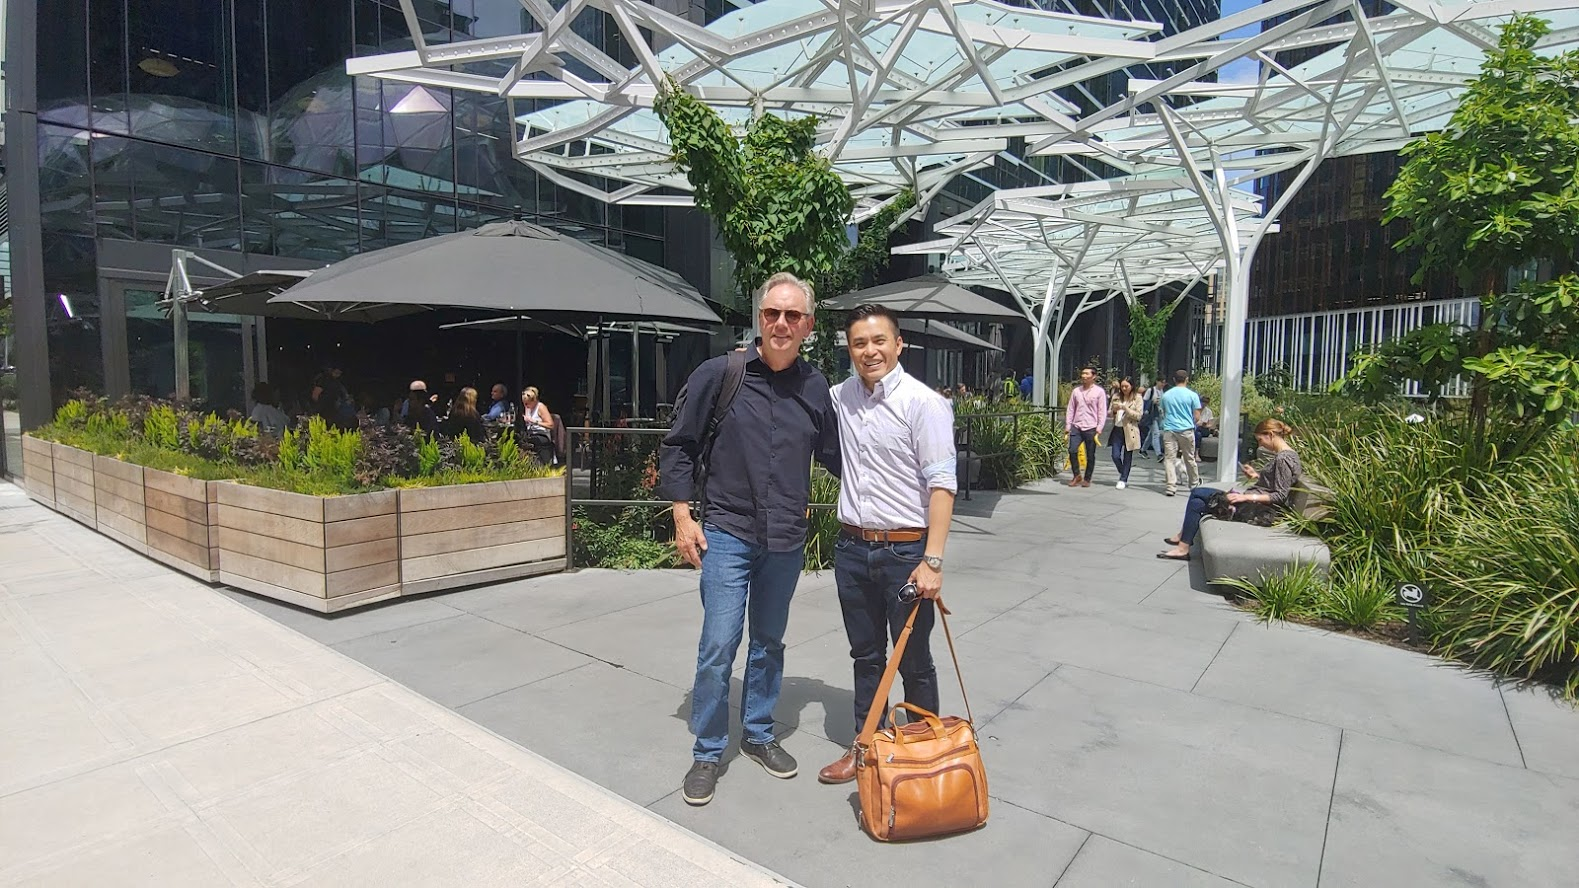 Hung out with Seattle developer Gary Olmeim of Hybridarc.com on the 2nd leg of my Pacific Northwest tour on 2nd suites and infill development. Were standing at the base of the headquarters, at 2120 Restaurant (which he built), and run by Milan Uzelac (from Toronto!)